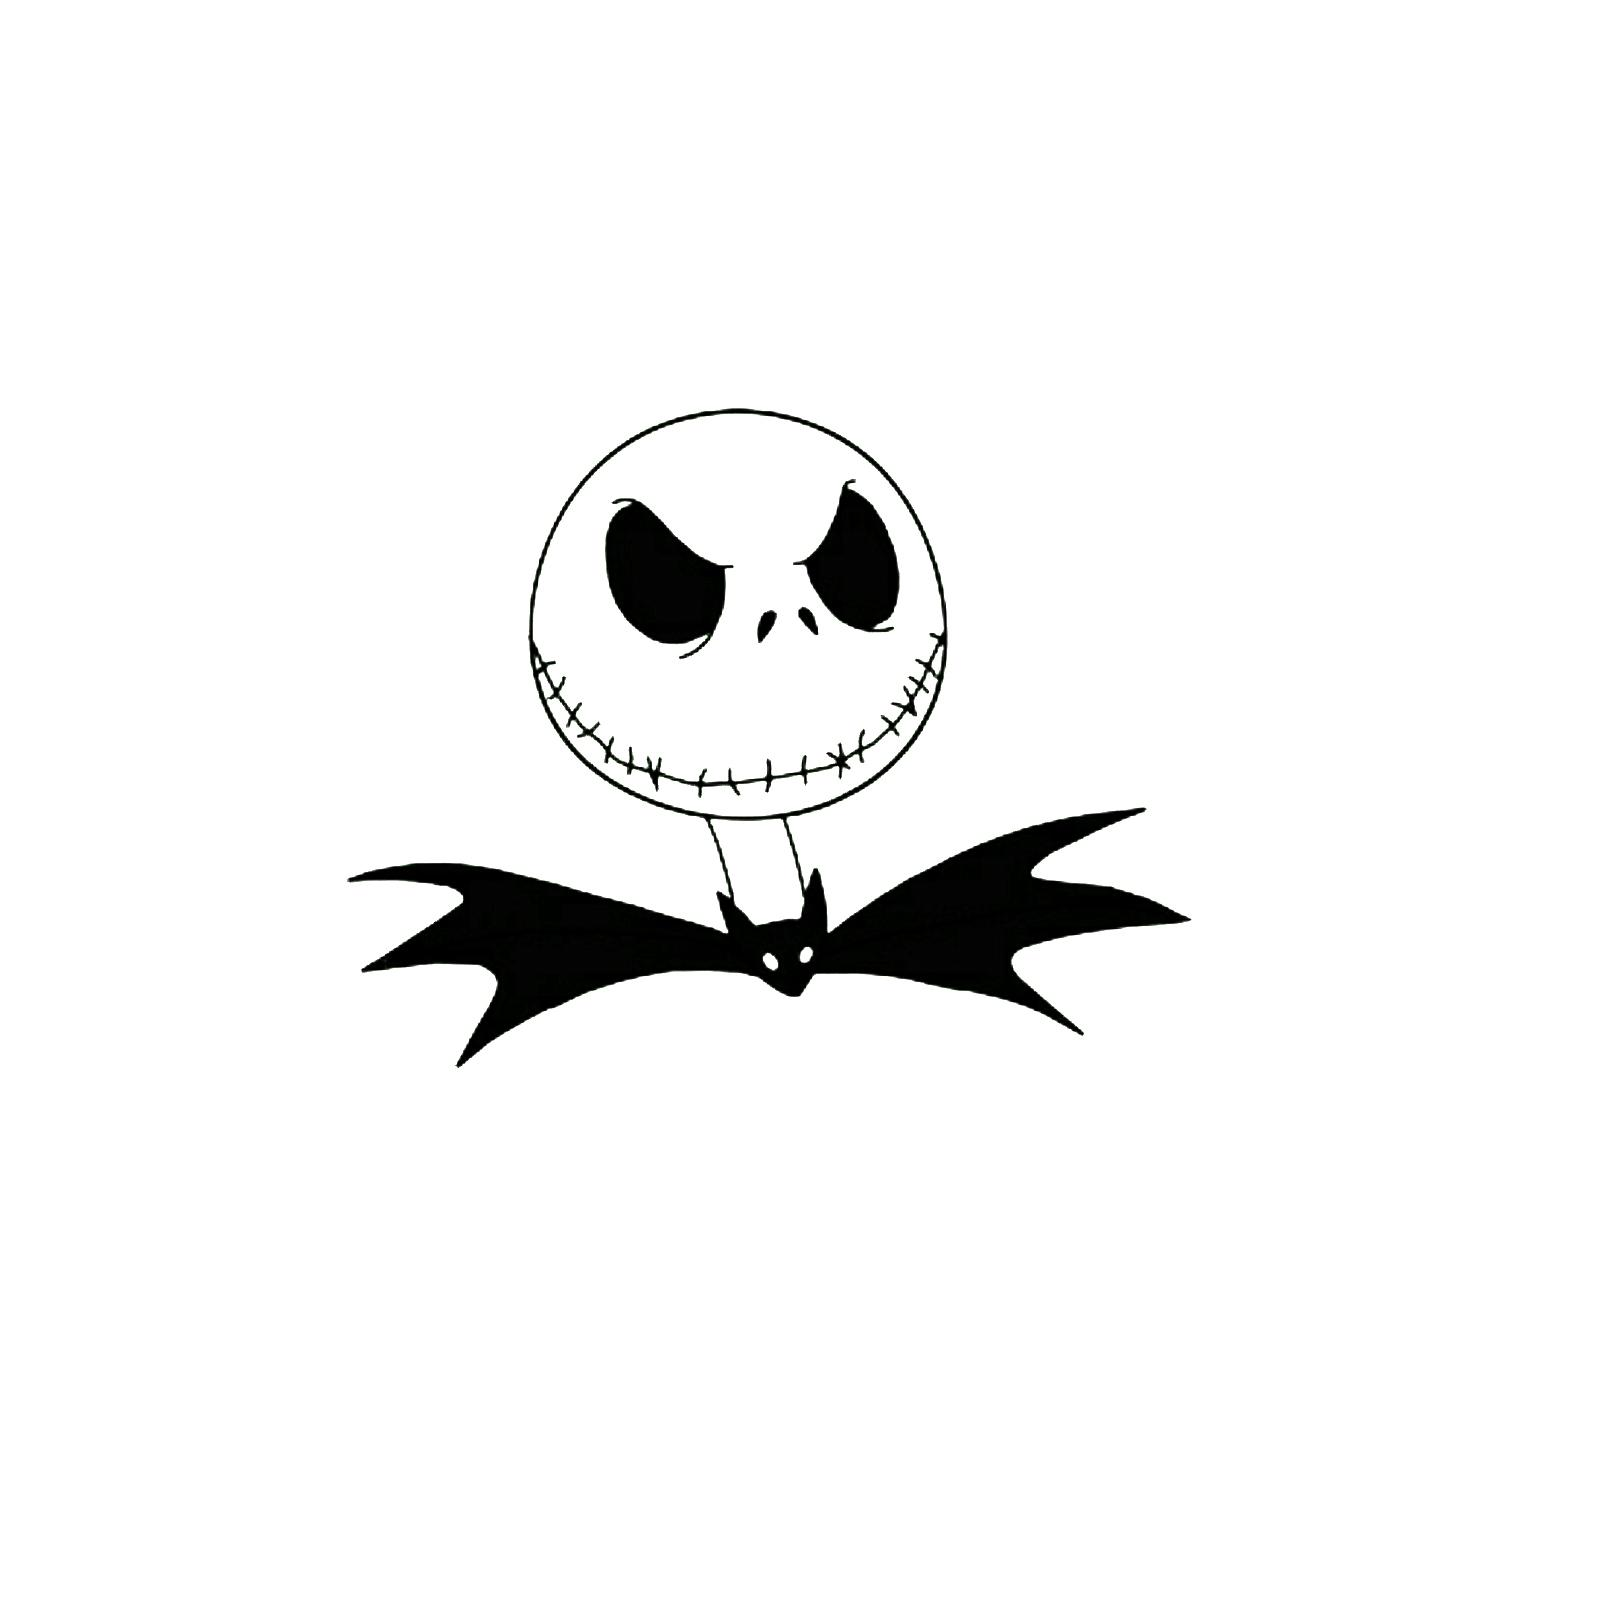 2019 nightmare before christmas car decal love window decal vinyl hobby car bumper sticker from xymy787 2 92 dhgate com